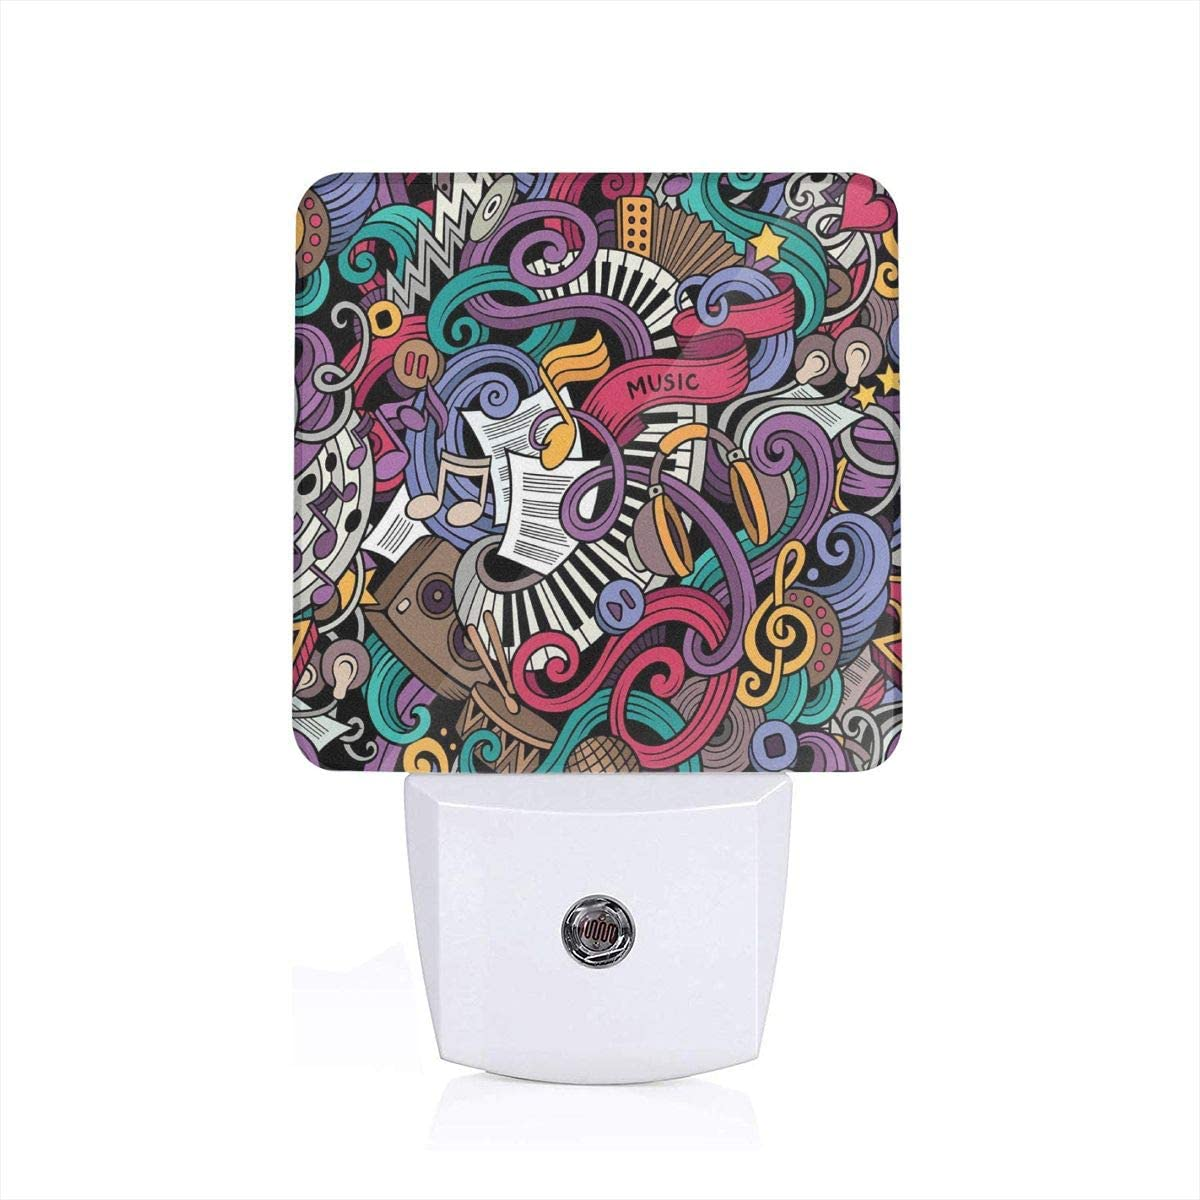 Music Themed Hand Drawn Abstract Instruments Microphone Drums Keyboard Stradivarius Plug-in LED Night Light Lamp with Dusk to Dawn Sensor, Night Home Decor Bed Lamp: Amazon.es: Iluminación